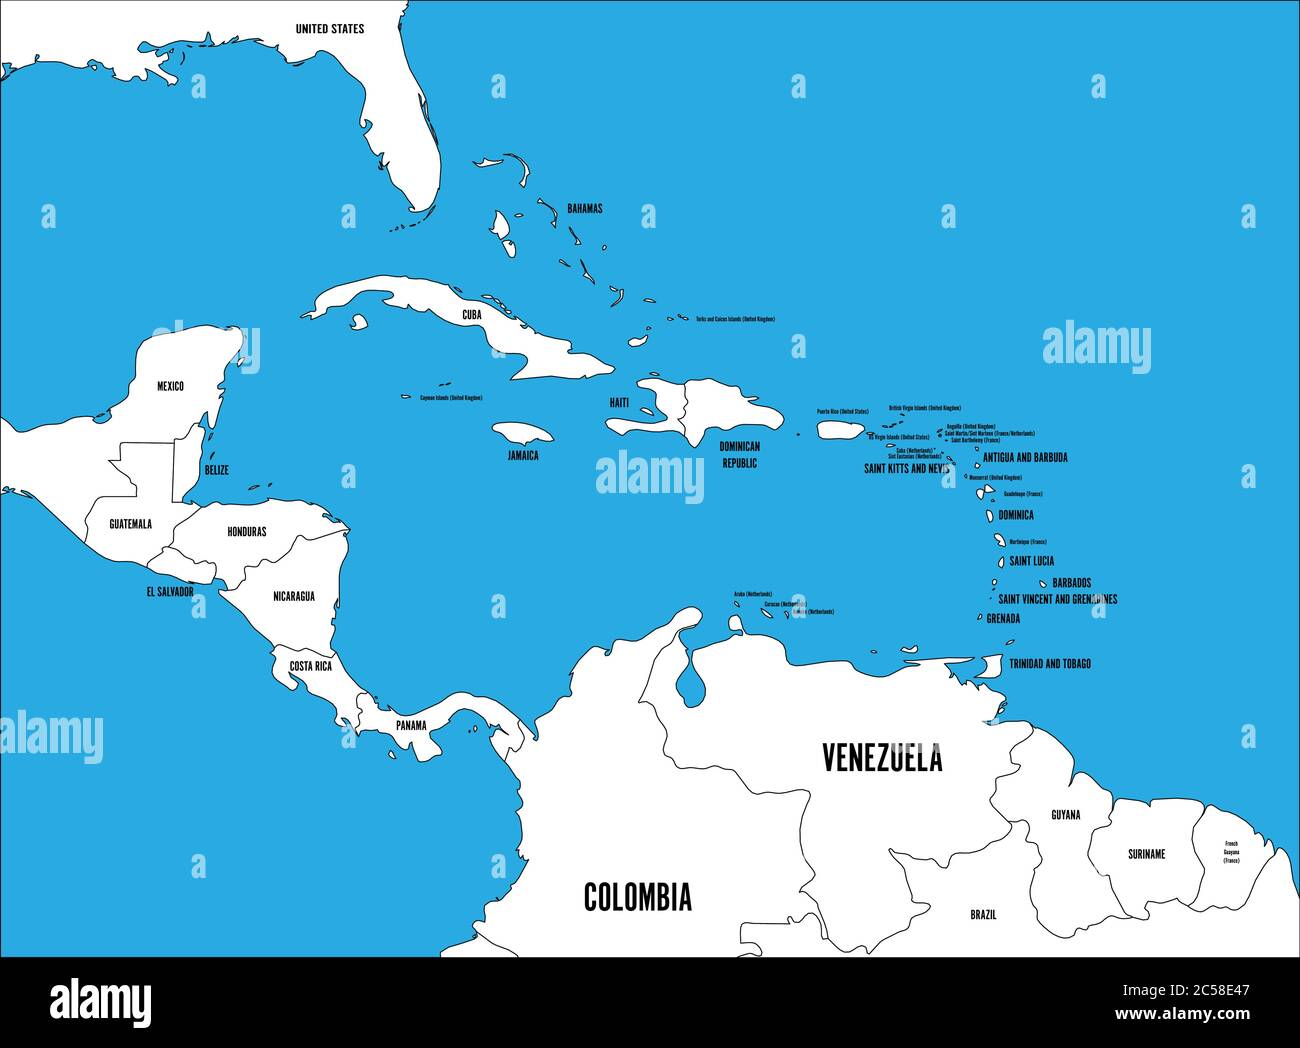 Picture of: Central America And Caribbean States Political Map Black Outline Borders With Black Country Names Labels On Blue Background Simple Flat Vector Illustration Stock Vector Image Art Alamy